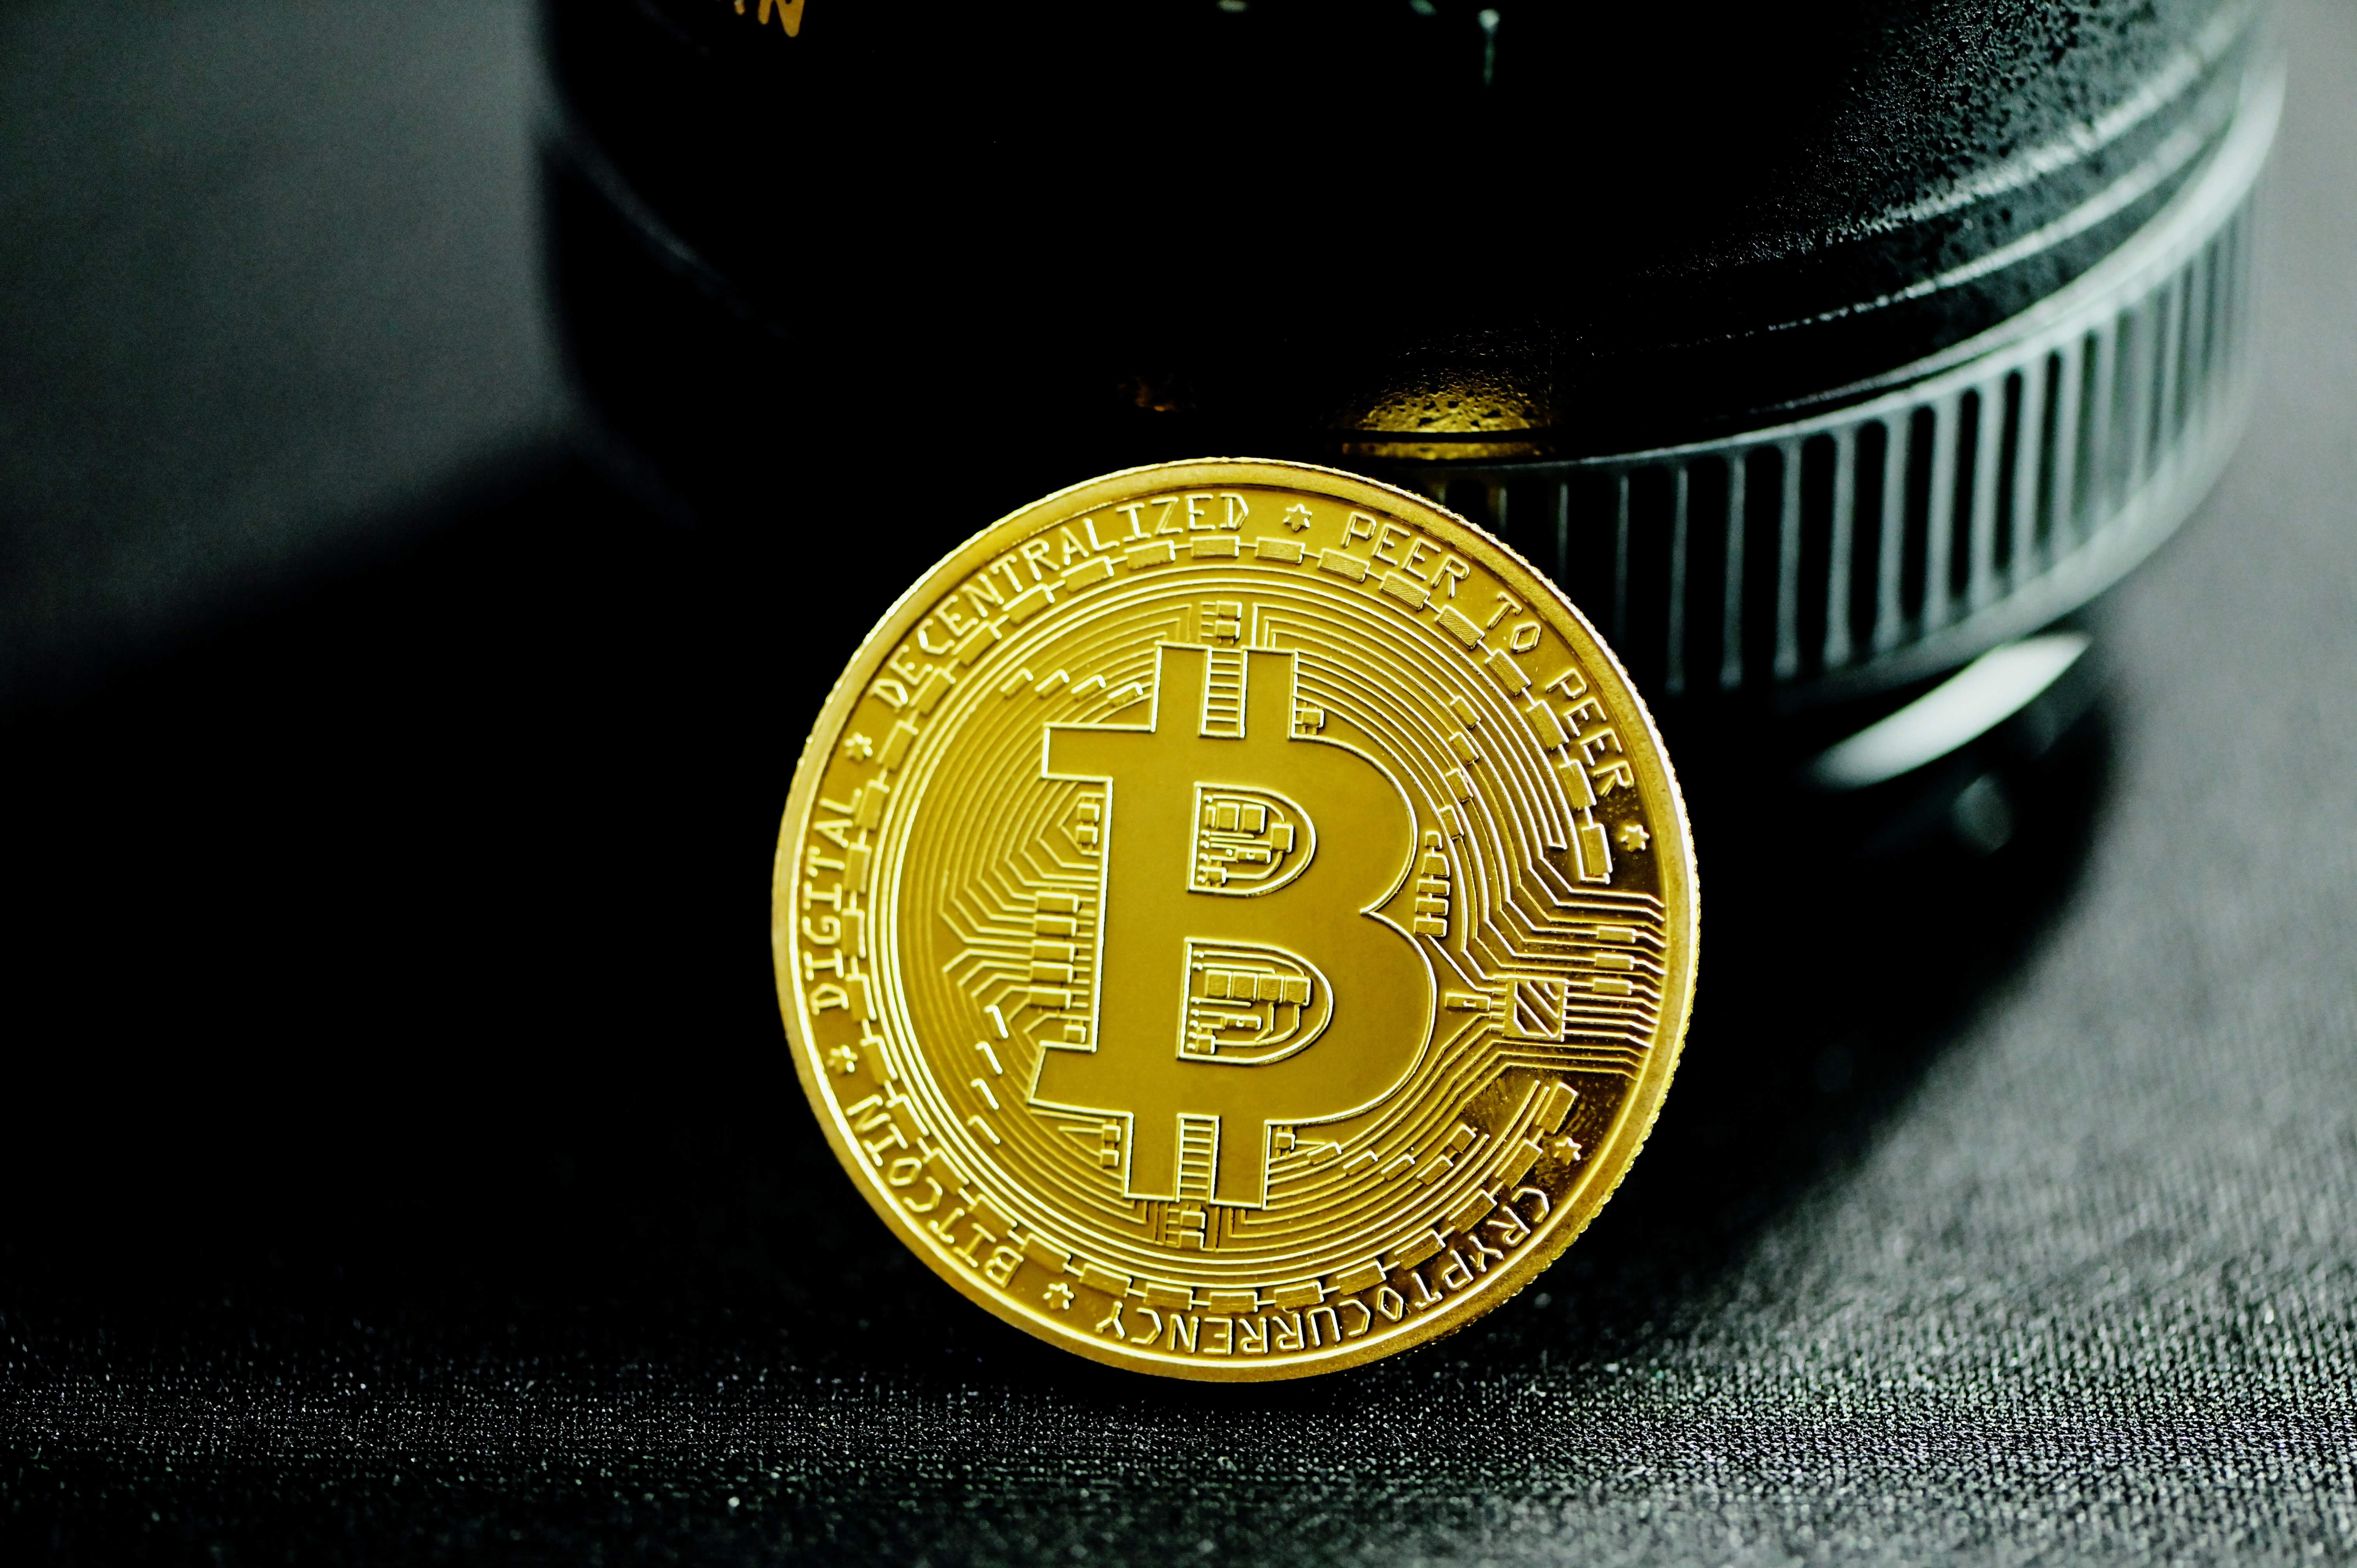 Bulls Successfully Defend $31k, But What's Next For Bitcoin?